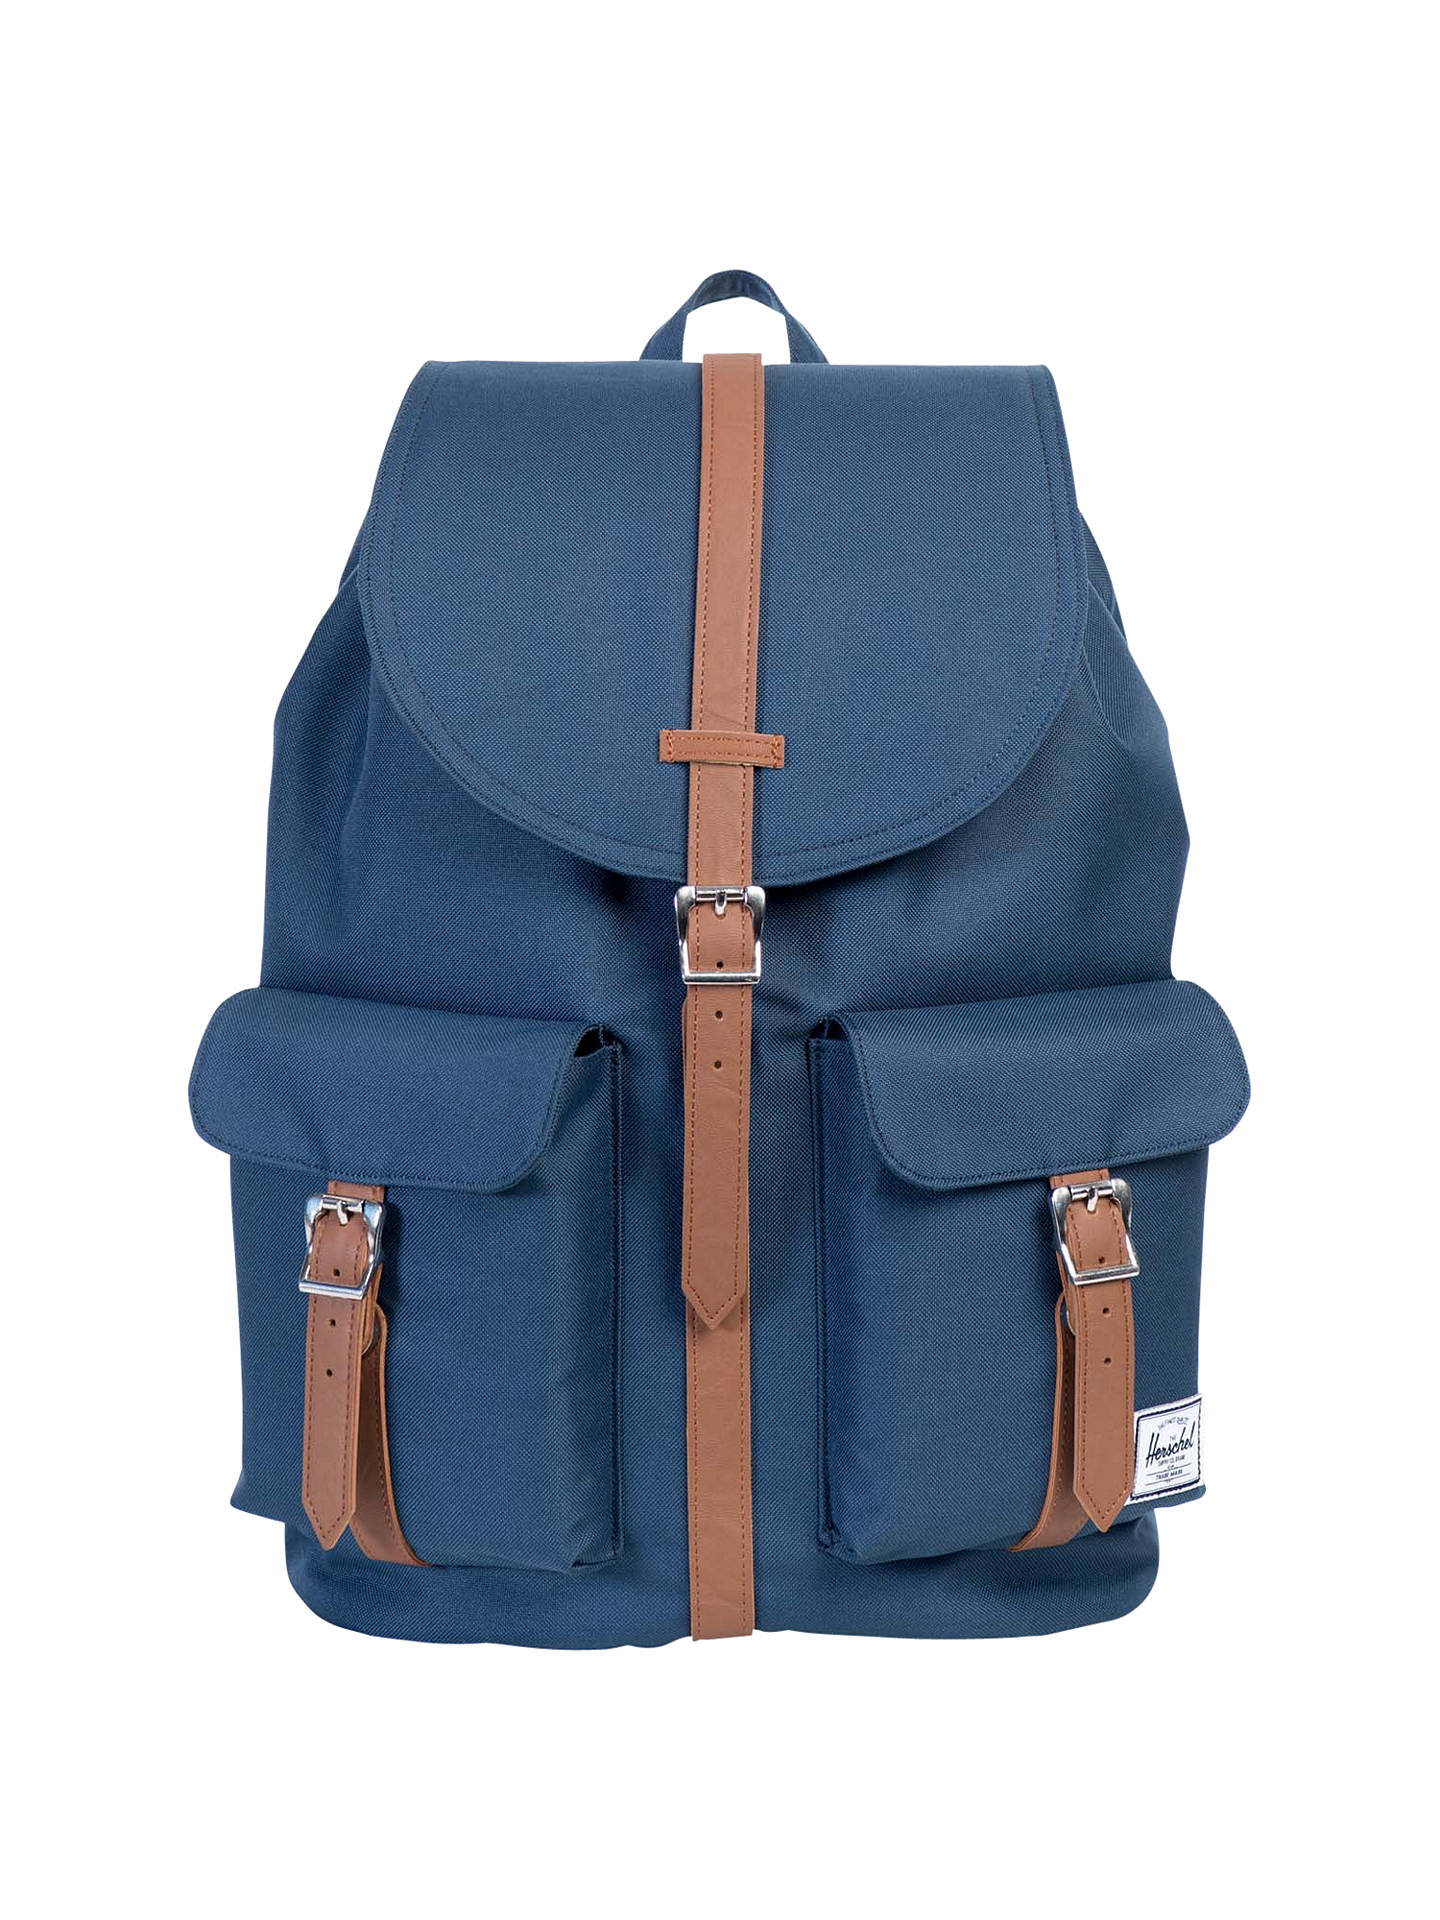 85c1104cc5 Buy Herschel Supply Co. Dawson Backpack